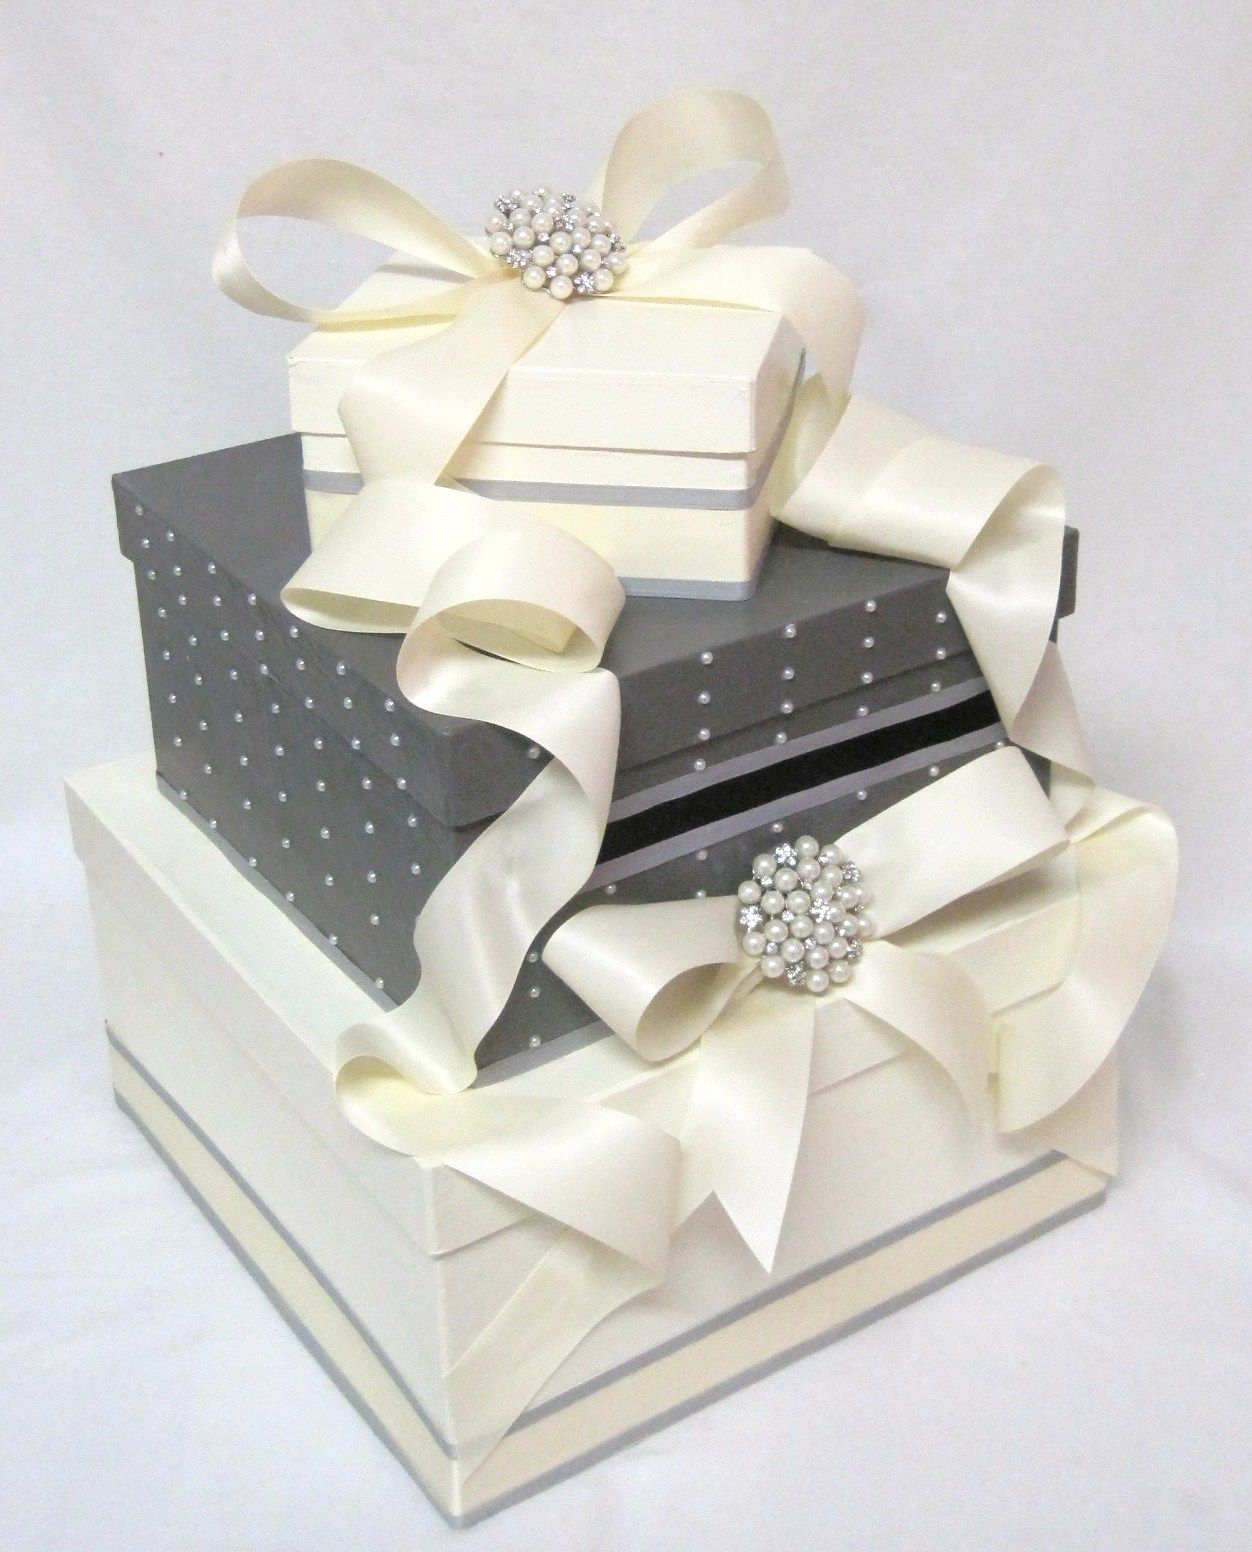 Coming up with ideas for a card box for my wedding. Wedding colors ...